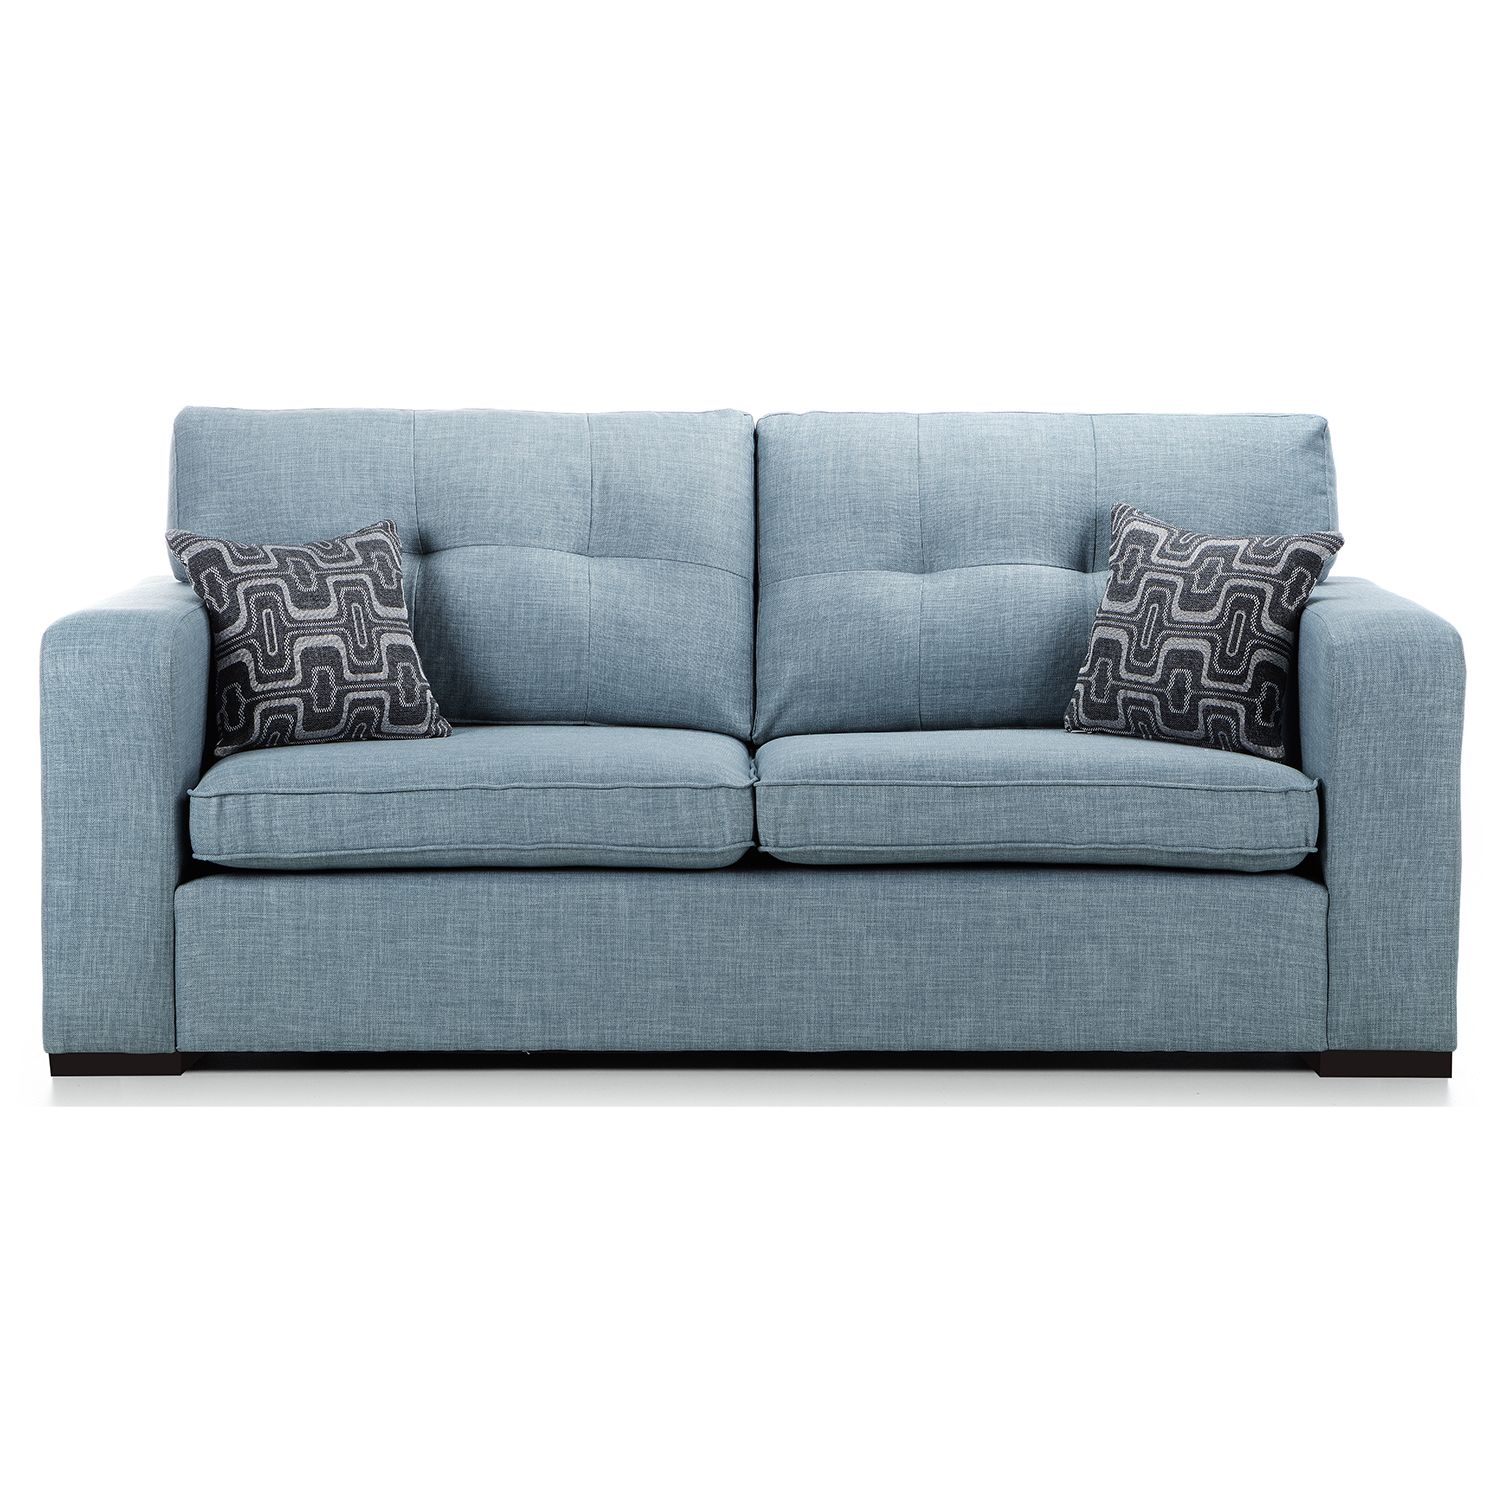 sofas delivered next day leather sofa online australia delivery  home decor 88